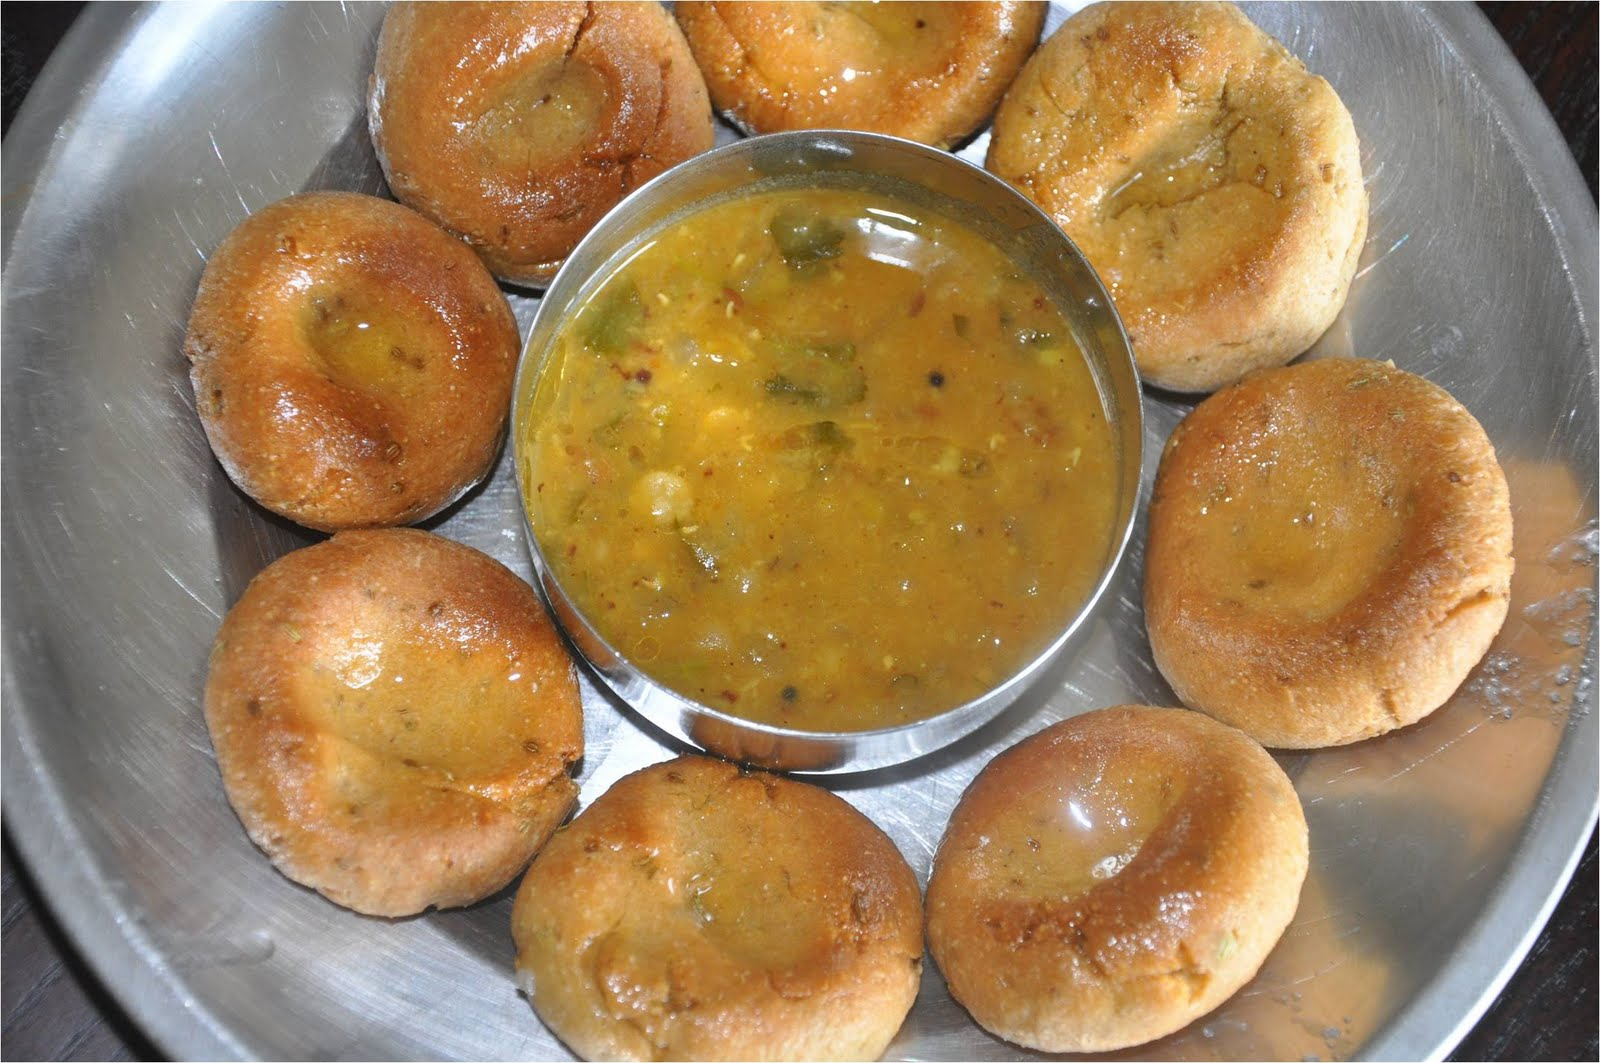 Mharo rajasthans recipes rajasthan a state in western india daal daal baati choorma a traditional trio recipe of rajasthan forumfinder Images